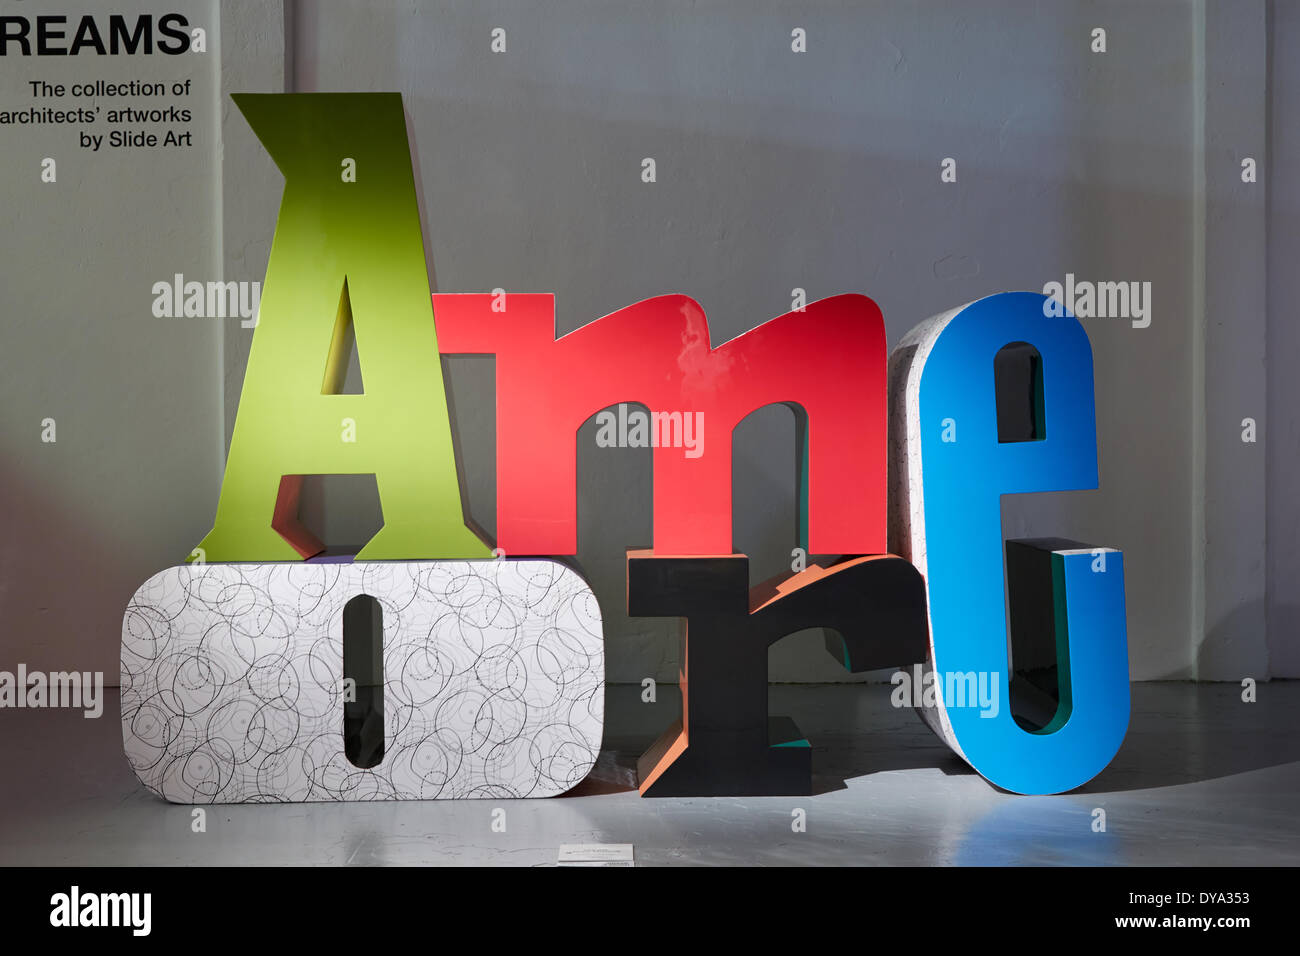 MILAN, ITALY, 10th Apr, 2014. Amore sculpture by Javier Mariscal during Salone Internazionale del Mobile, Furniture fair in Milan. Credit:  A. Astes/Alamy Live News - Stock Image